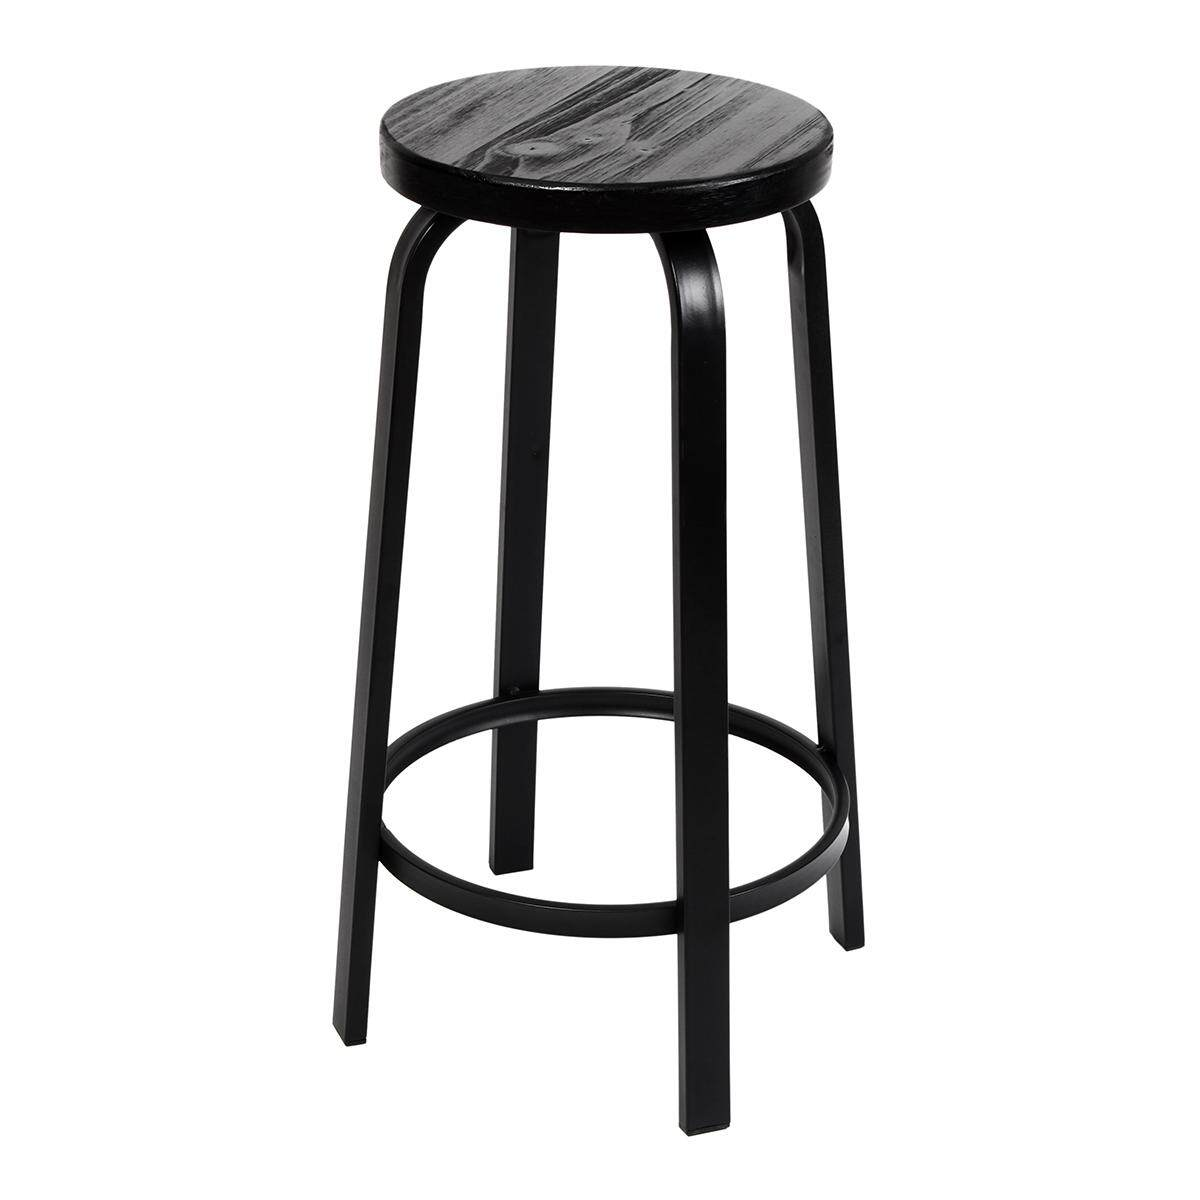 Industrial Retro Urban Metal Bar Stool Cafe Factory Chair Furniture # 80cm